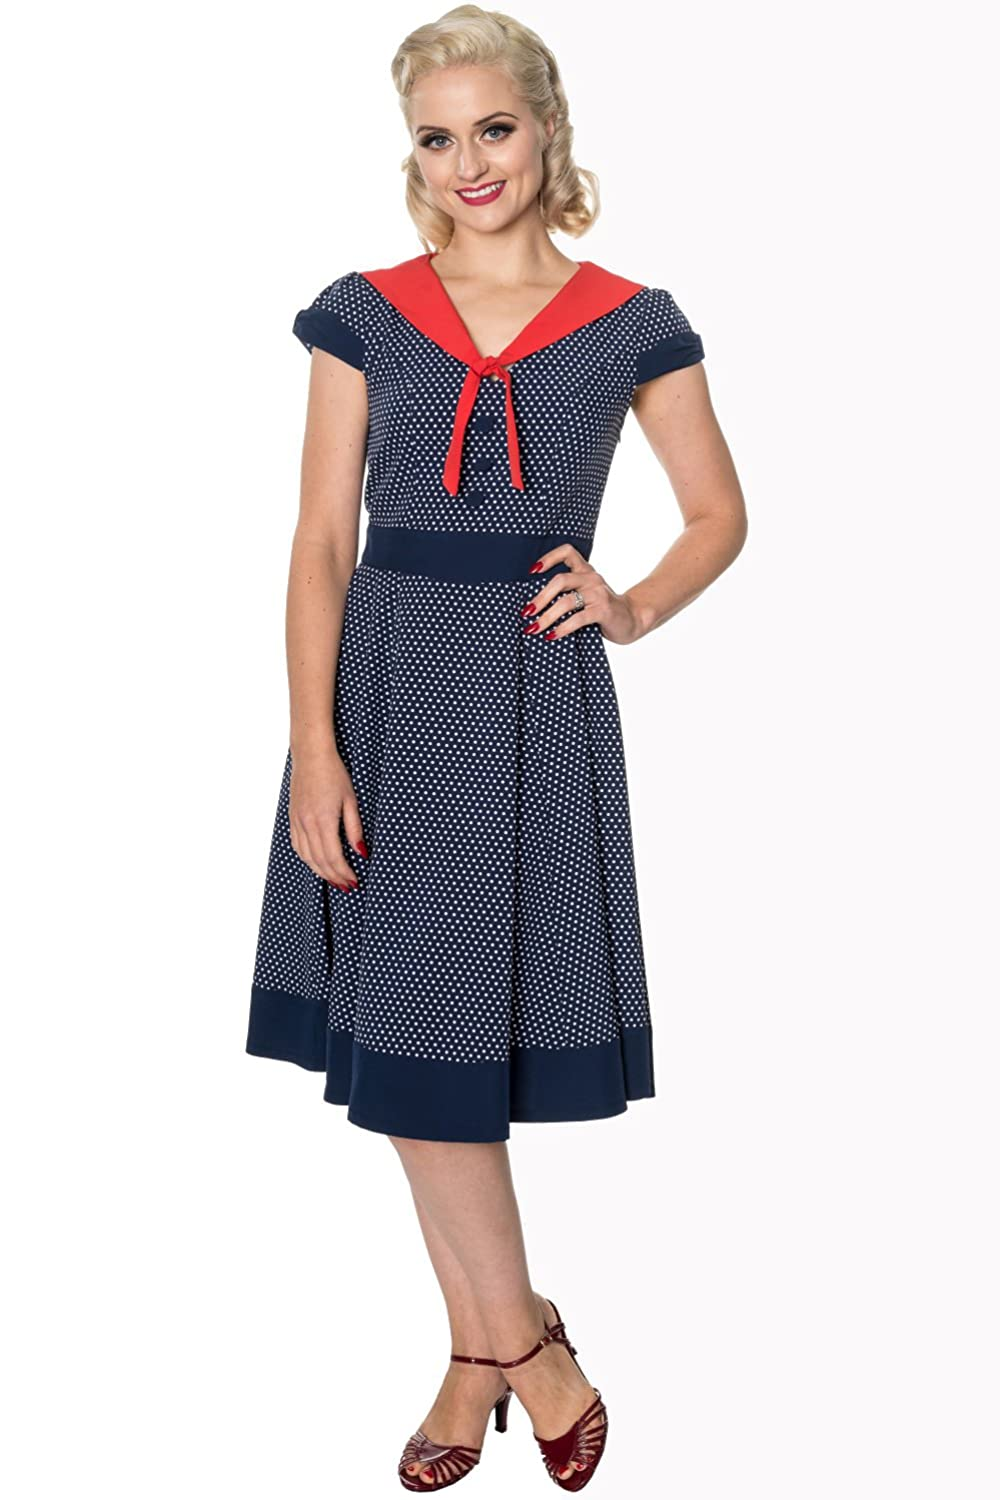 Retro Nautical Dresses